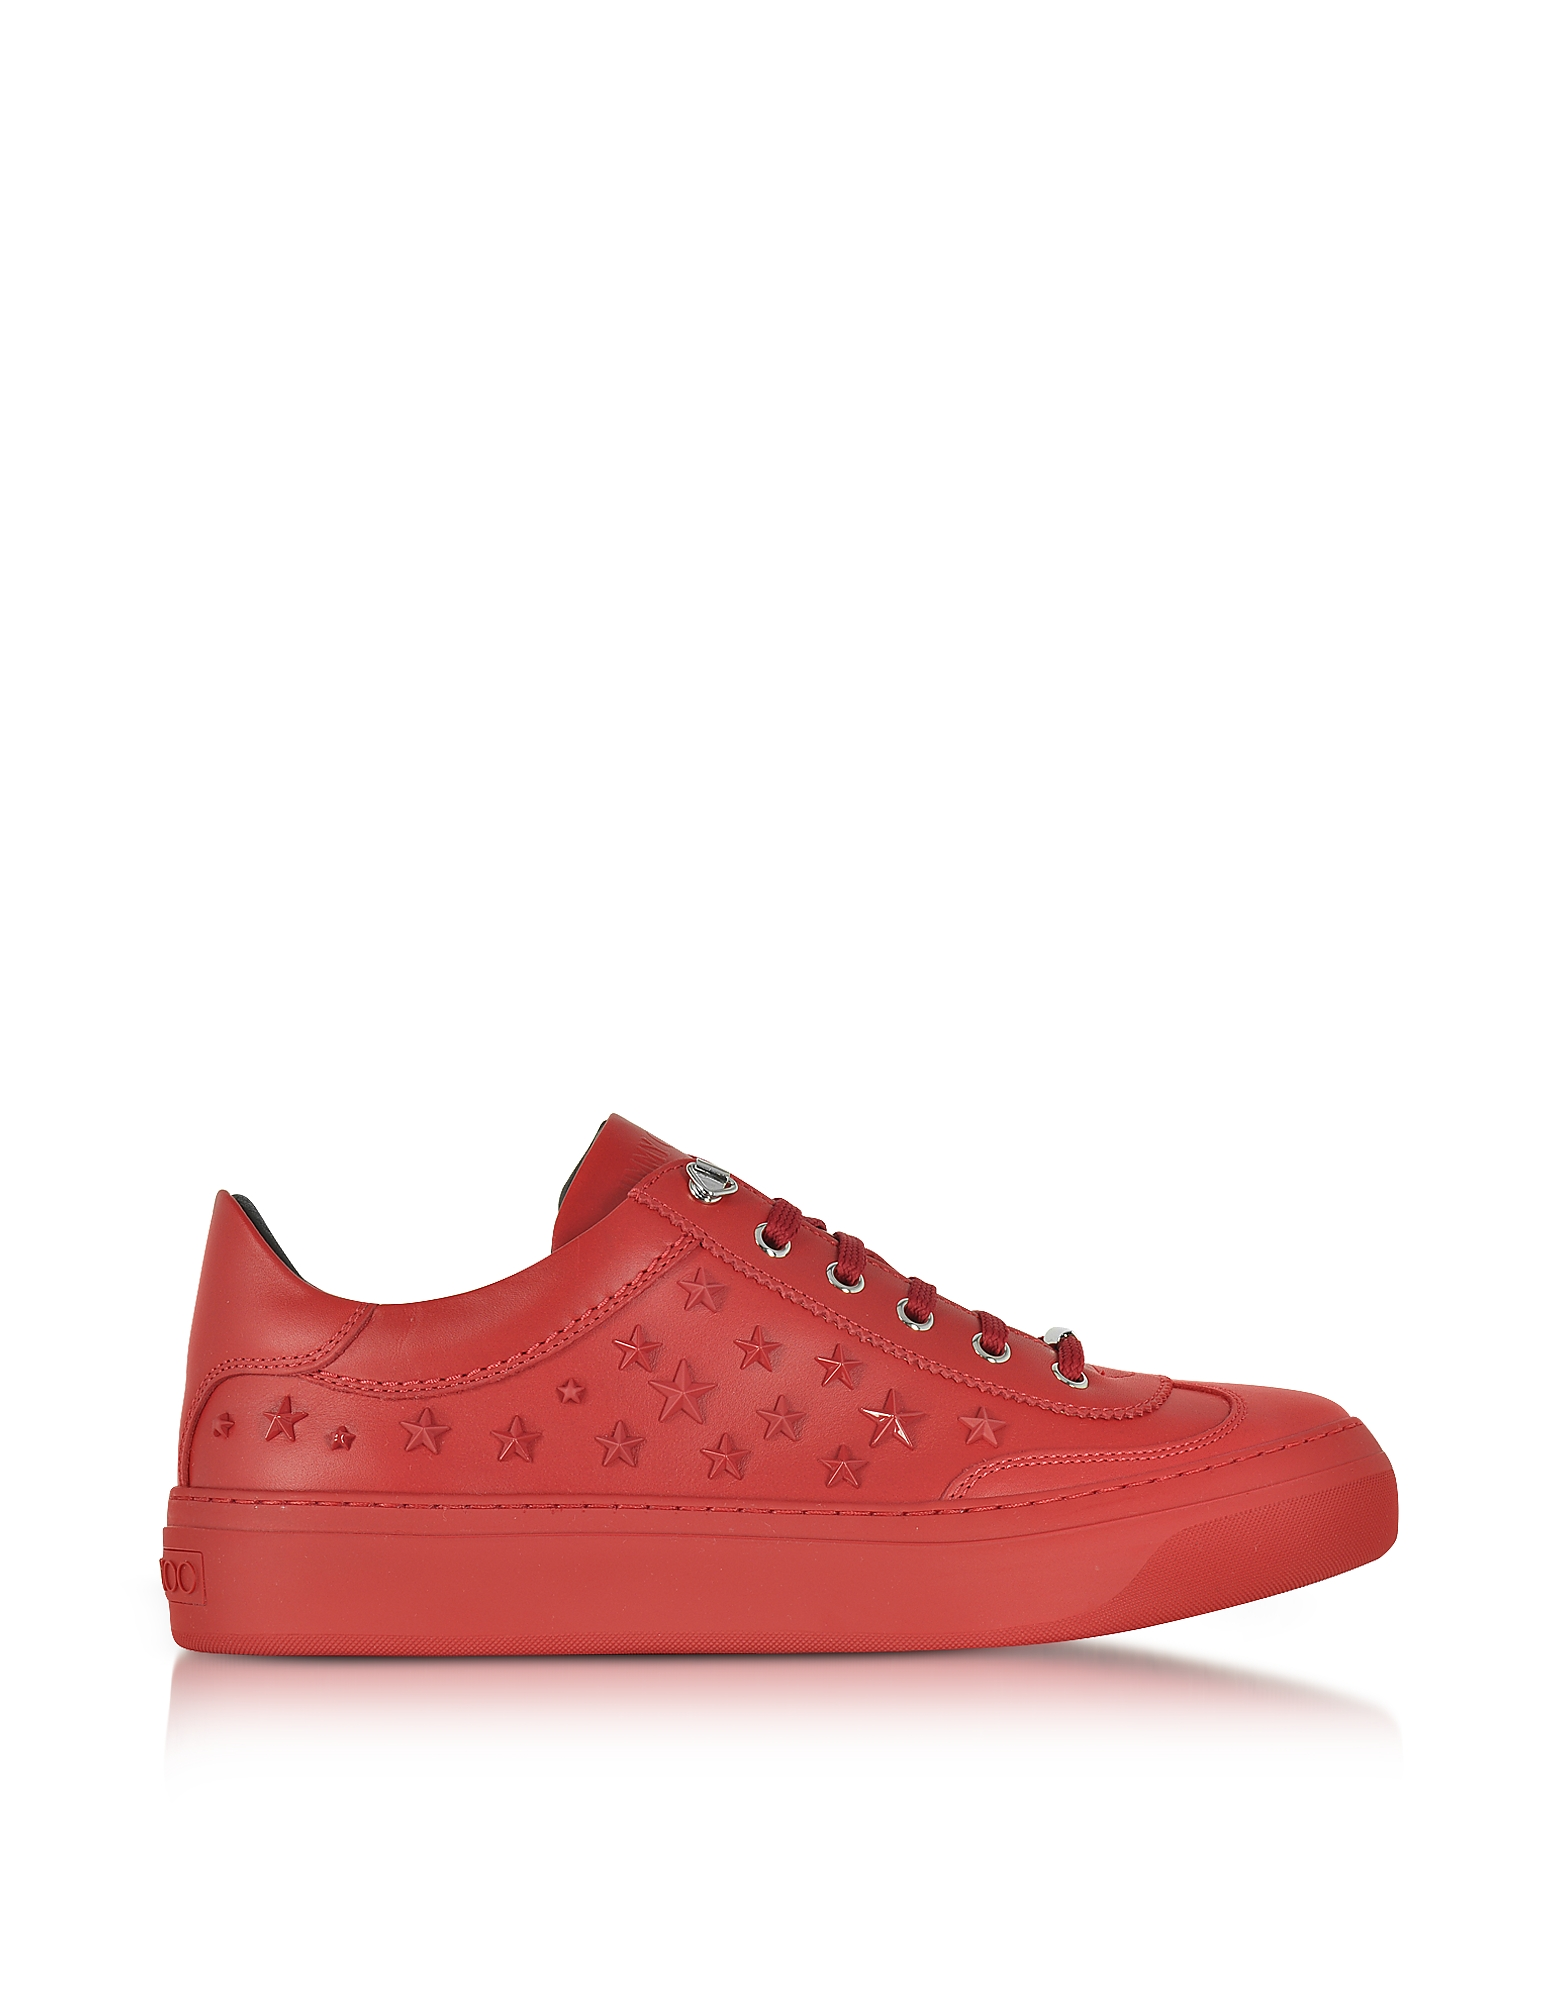 Jimmy Choo Shoes, Ace Sport Deep Red Leather Low Top Sneakers w/Mixed Stars